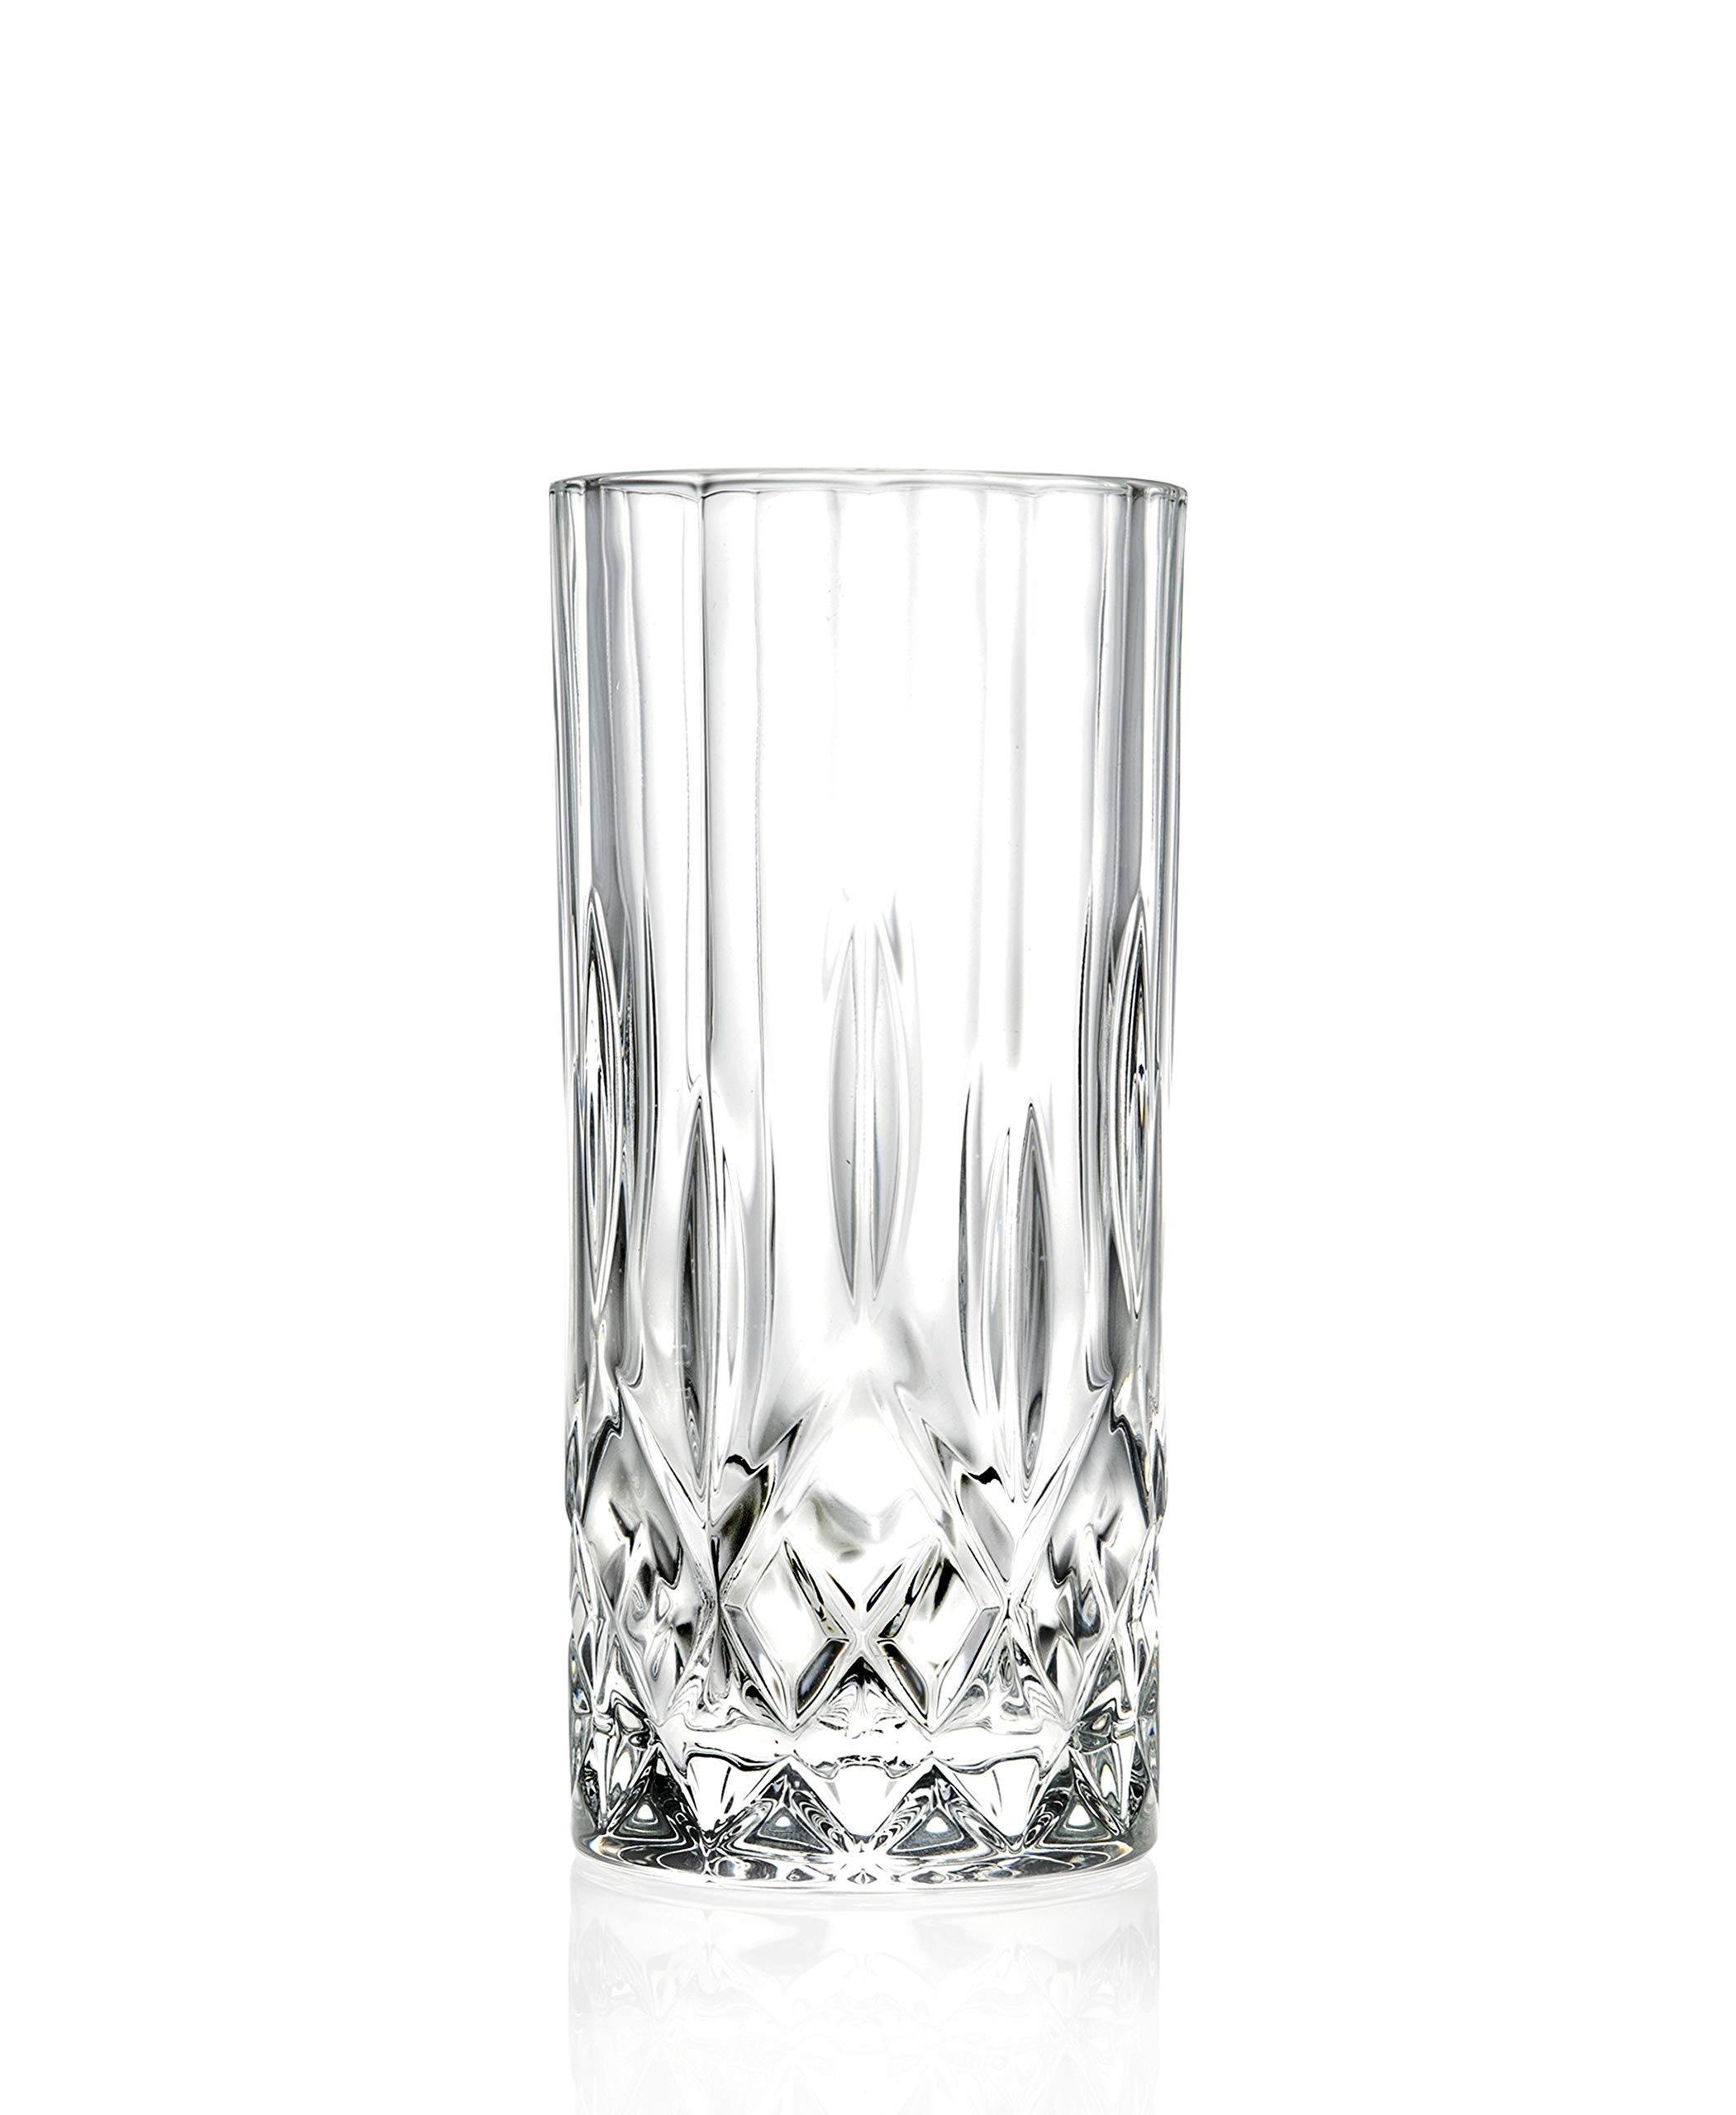 Highball - Glass - Set of 6 - Hiball Glasses - Lead Free Crystal - Beautiful Designed - Drinking Tumblers - for Water, Juice, Wine, Beer and Cocktails - 13 oz. - by Barski - Made in Europe by Barski